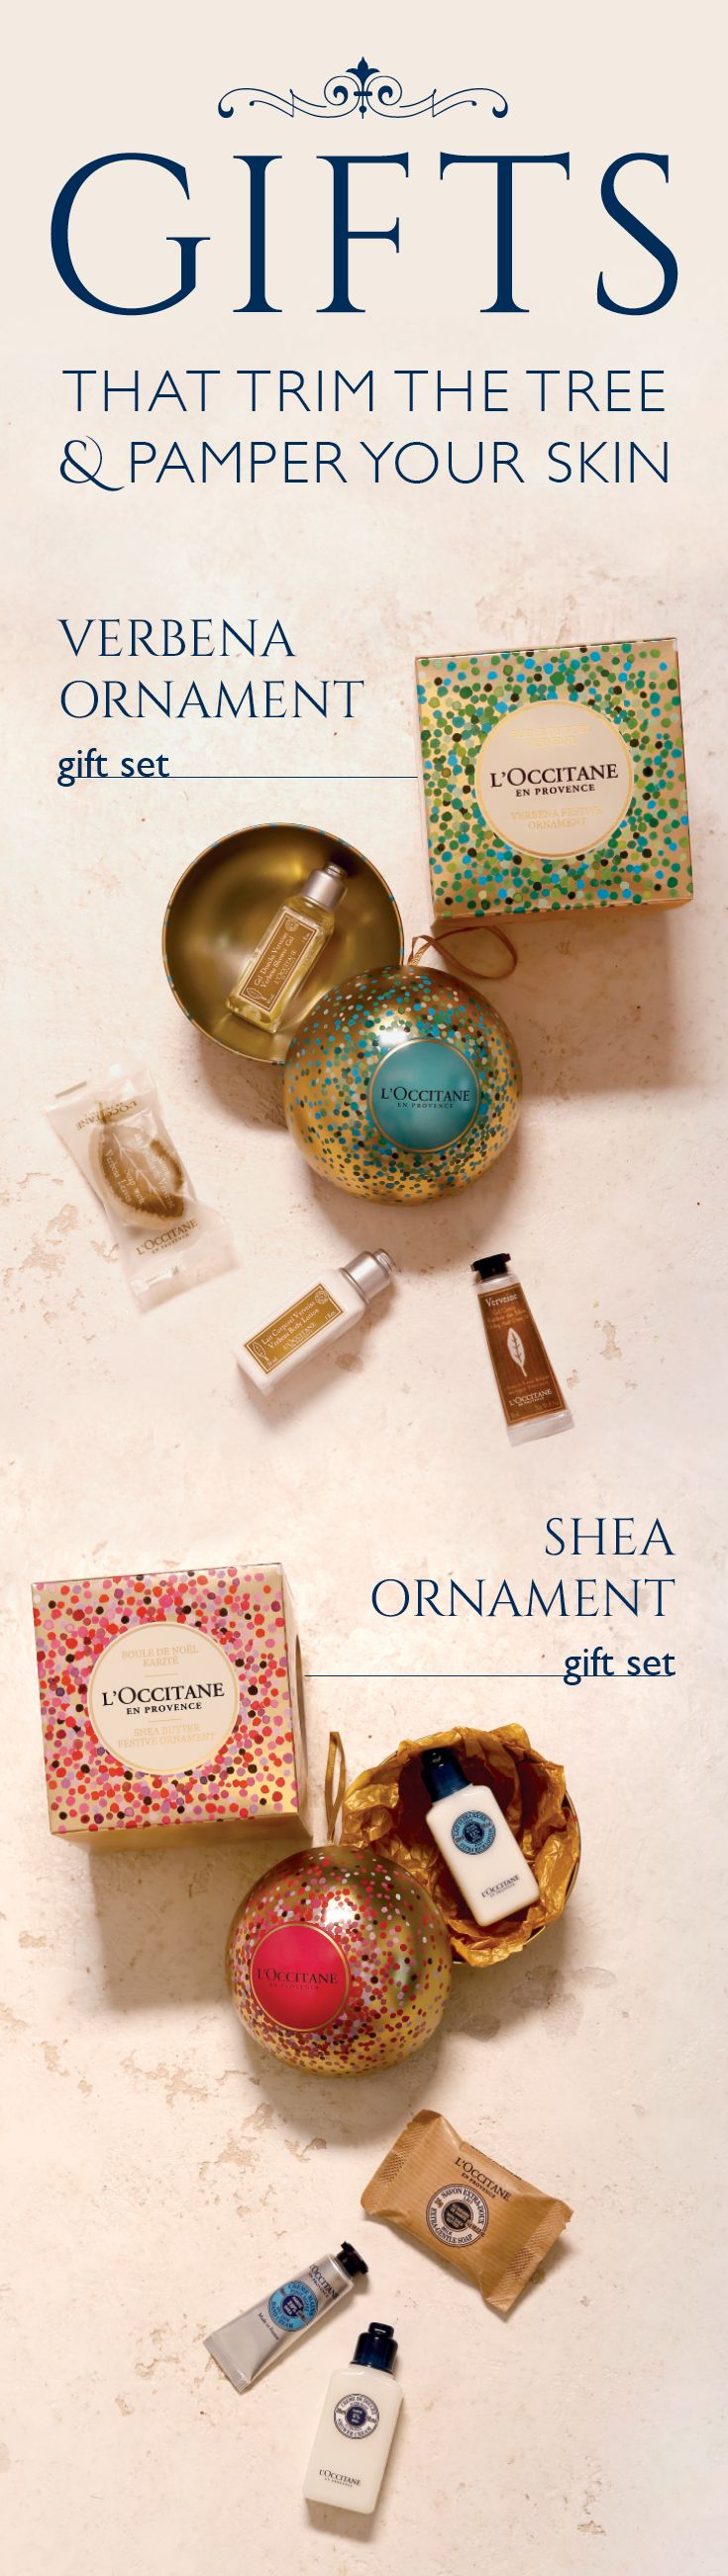 L'Occitane Shea Butter and Verbena Ornaments for Holiday 2015